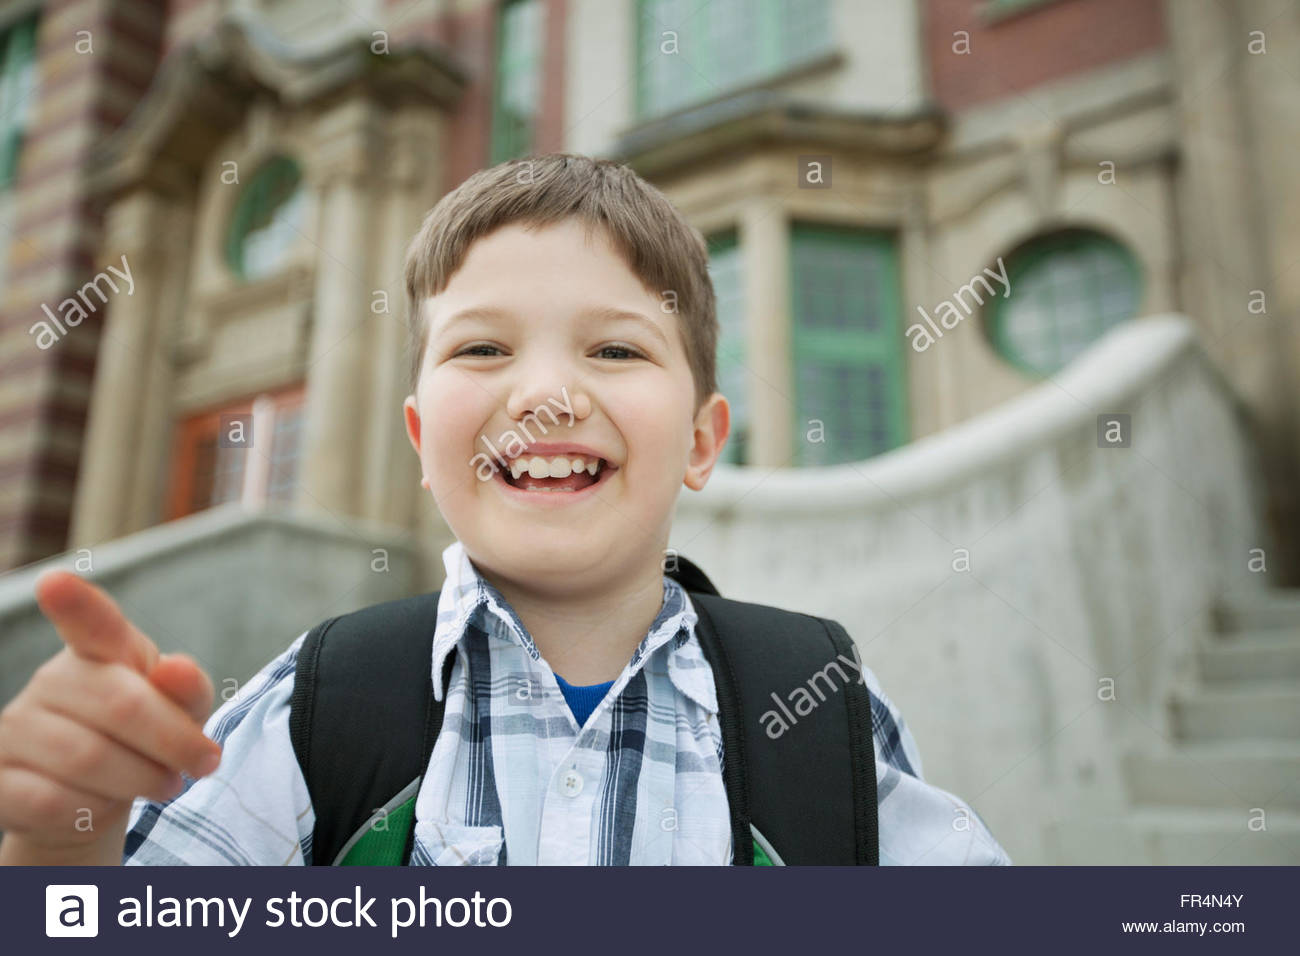 Male, elementary student standing outside school. - Stock Image